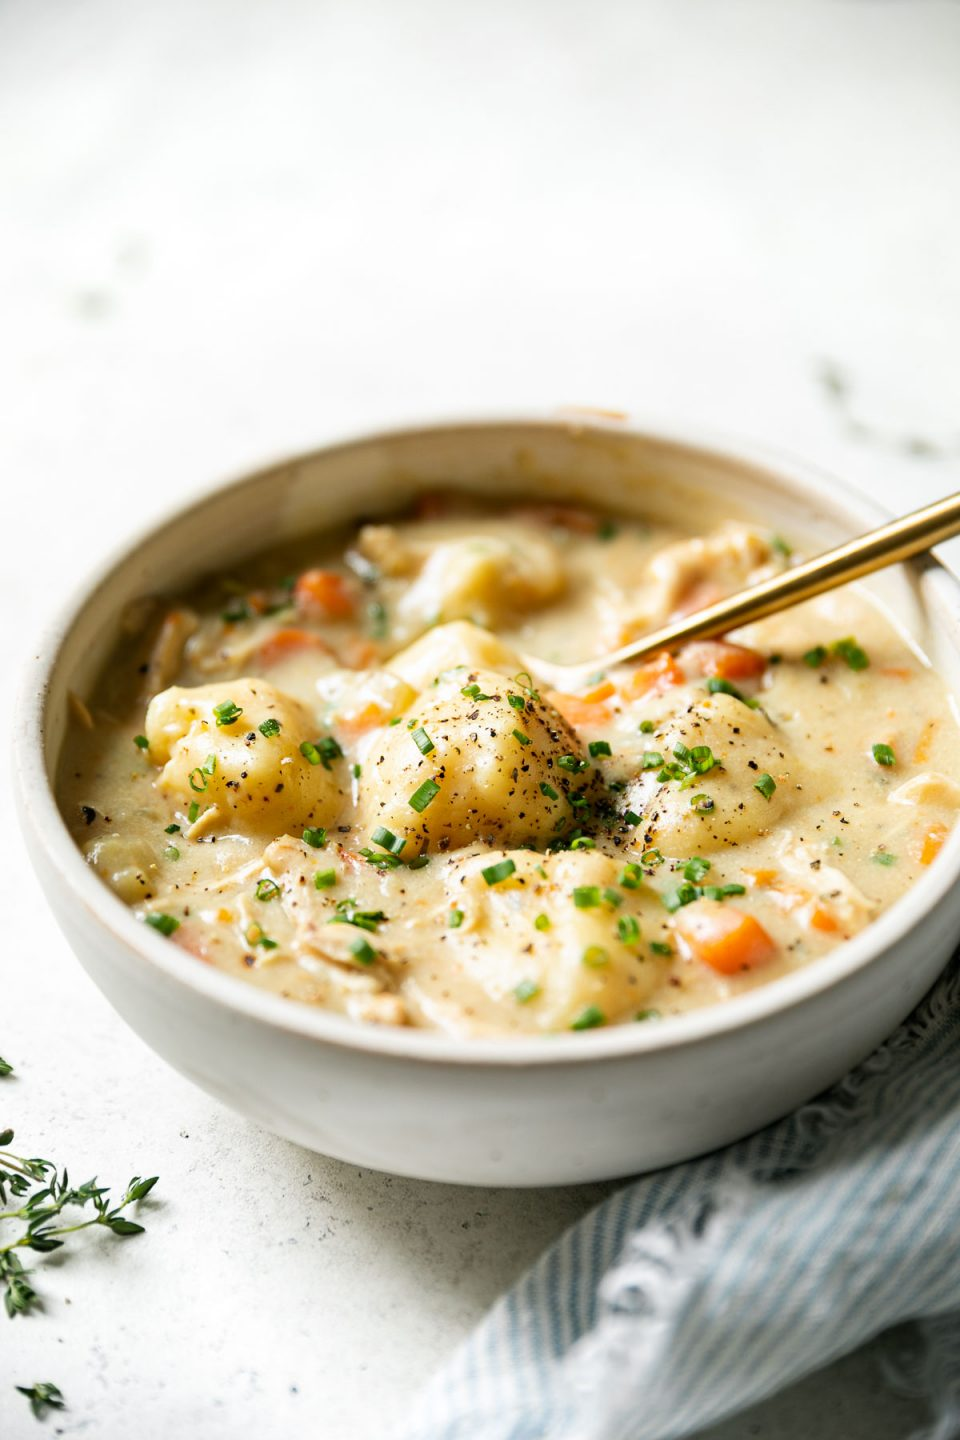 Side angle of bowl of Chicken & Gnocchi Soup, sitting atop a white surface, next to a blue & white striped linen napkin & a few sprigs of fresh thyme. The soup is garnished with cracked black pepper & finely chopped fresh chives & there is a gold spoon nestled in the bowl.